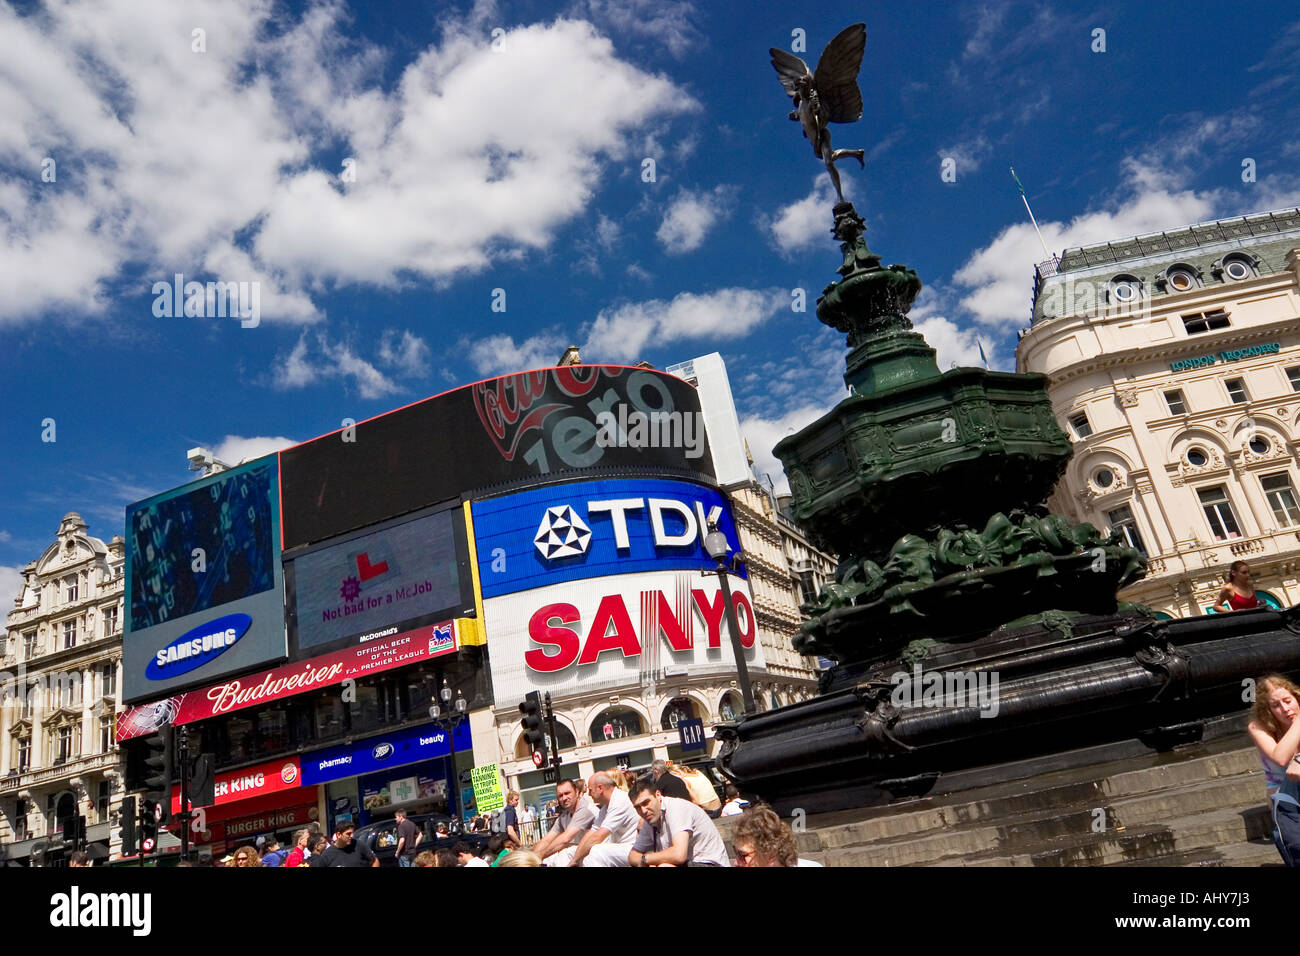 Eros statue at Piccadilly Circus London - Stock Image